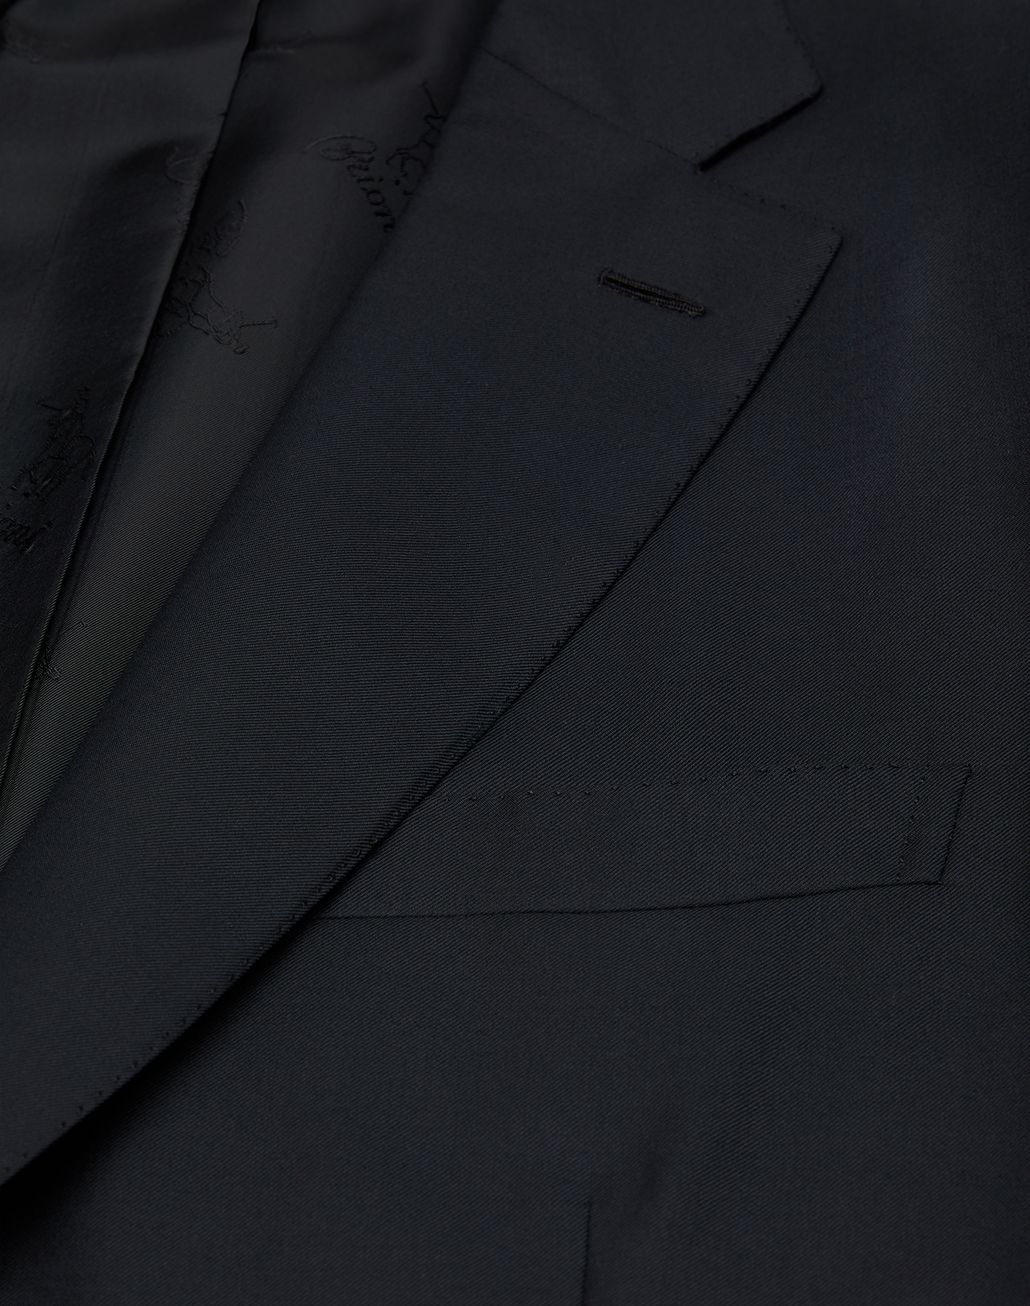 BRIONI 'Essential' Black Brunico Suit Suits & Jackets [*** pickupInStoreShippingNotGuaranteed_info ***] a